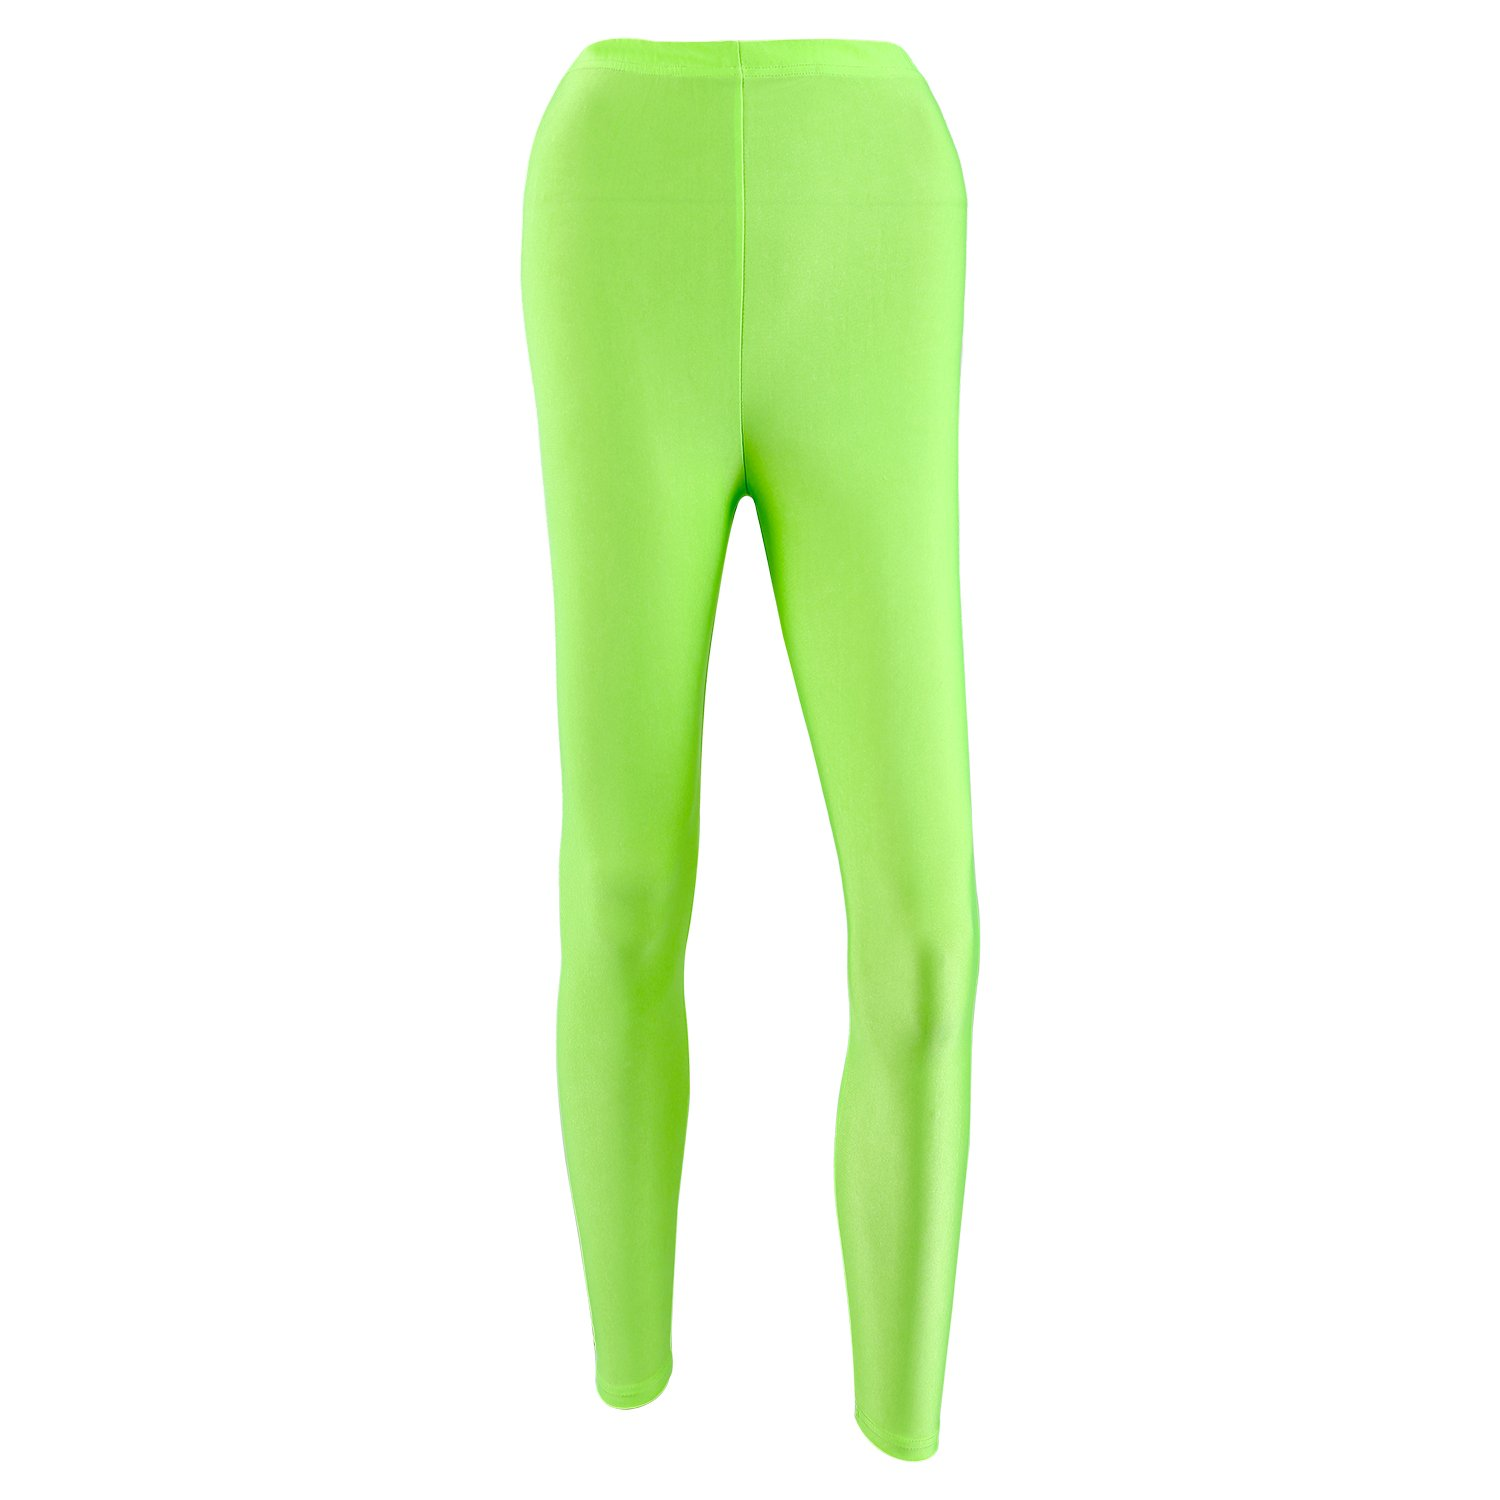 563c9b77cc745 MATERIAL:Made of 100% Polyester,which have a smooth slight nylon feel,Pair  with a solid color tunic top. 2.COLOR:Black Leggings with multi-color neon  ...